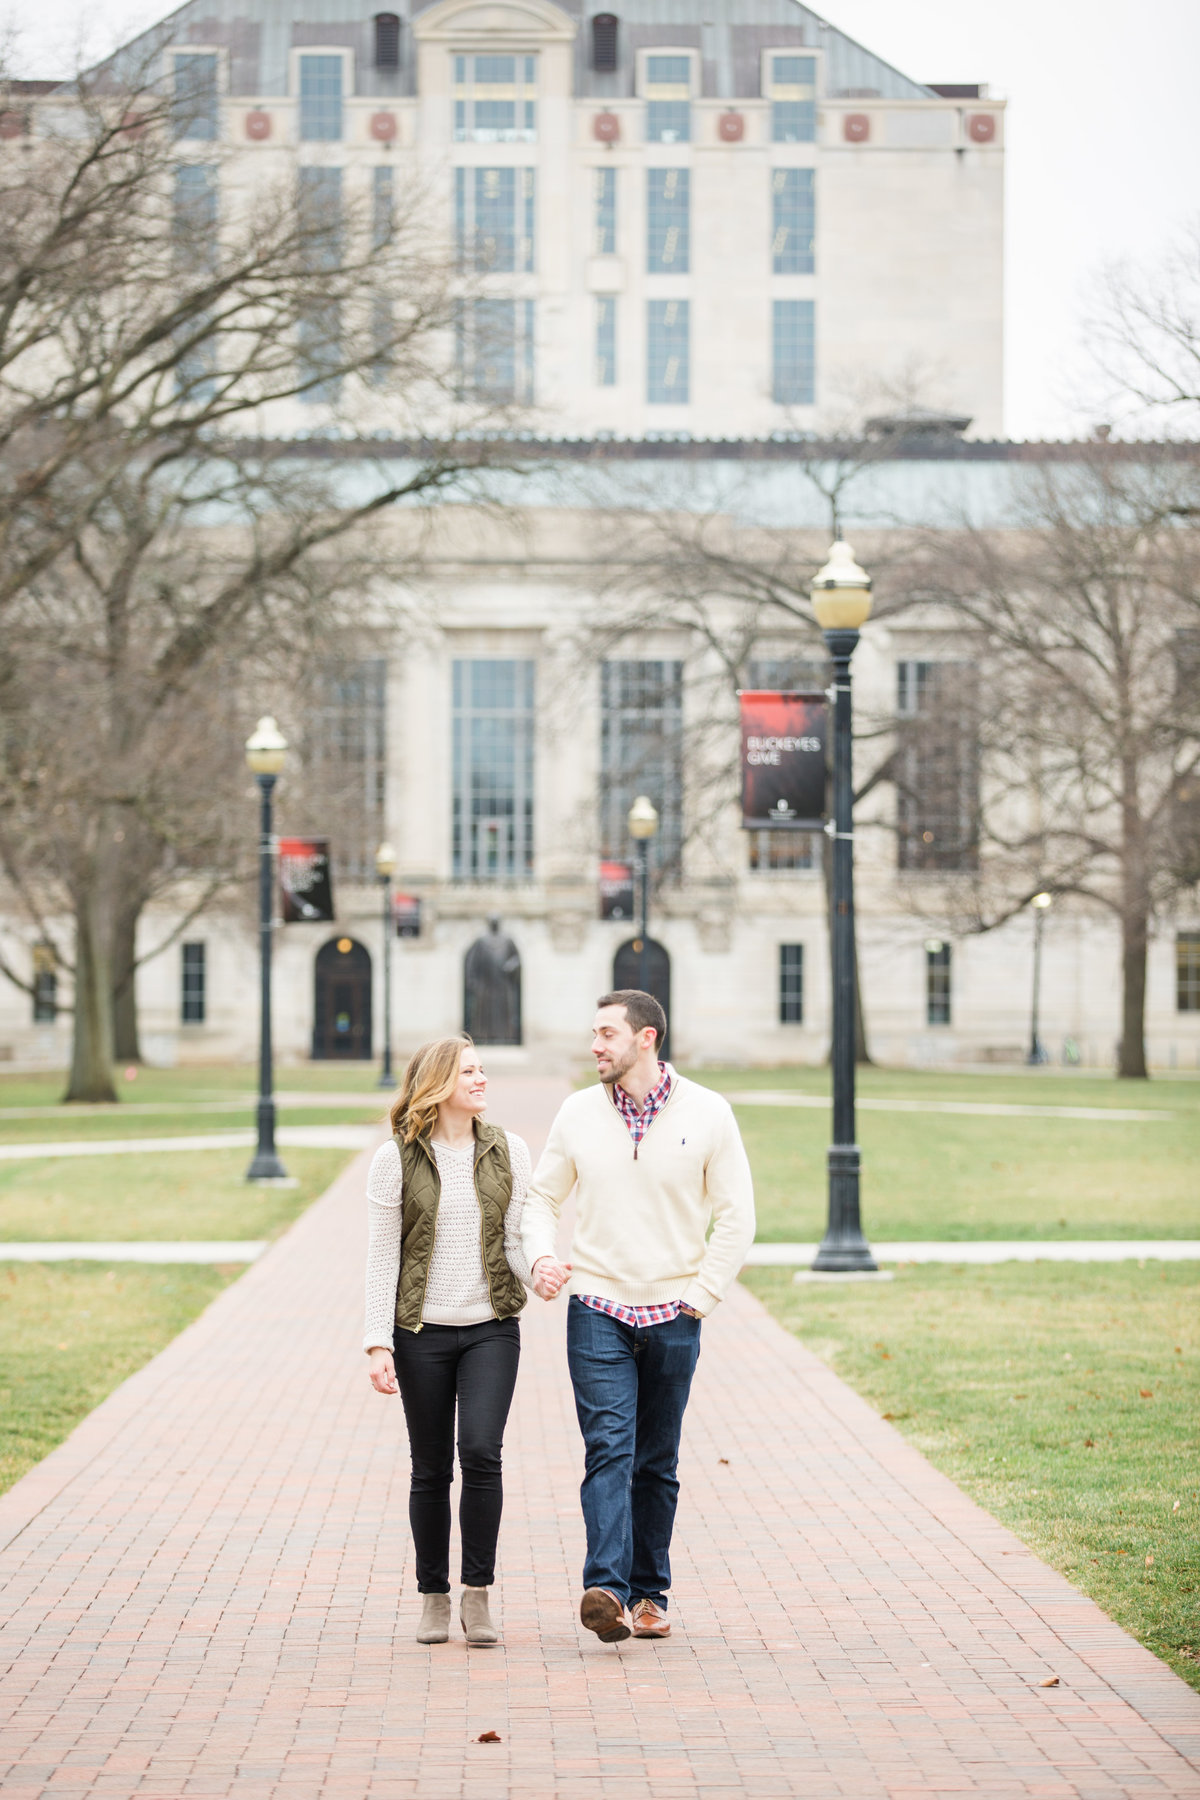 Jenn-and-luke-engagement-columbus-osu-jan-2017-67